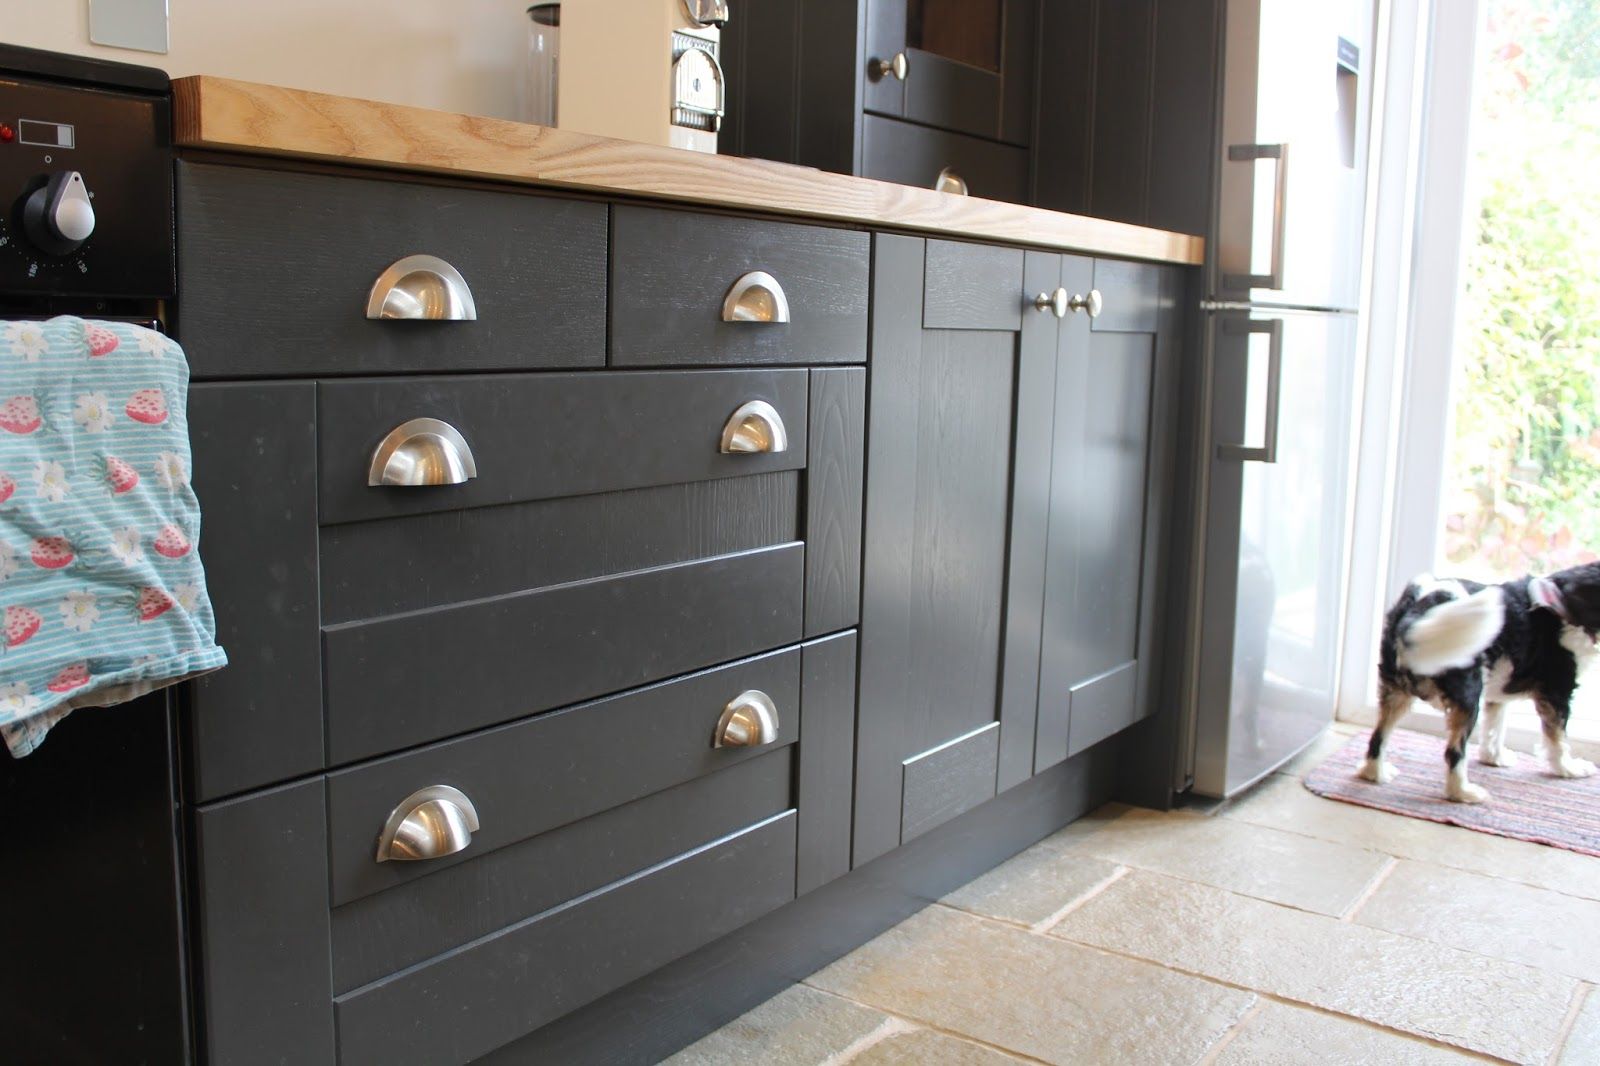 satin nickel drawer handles in graphite kitchen